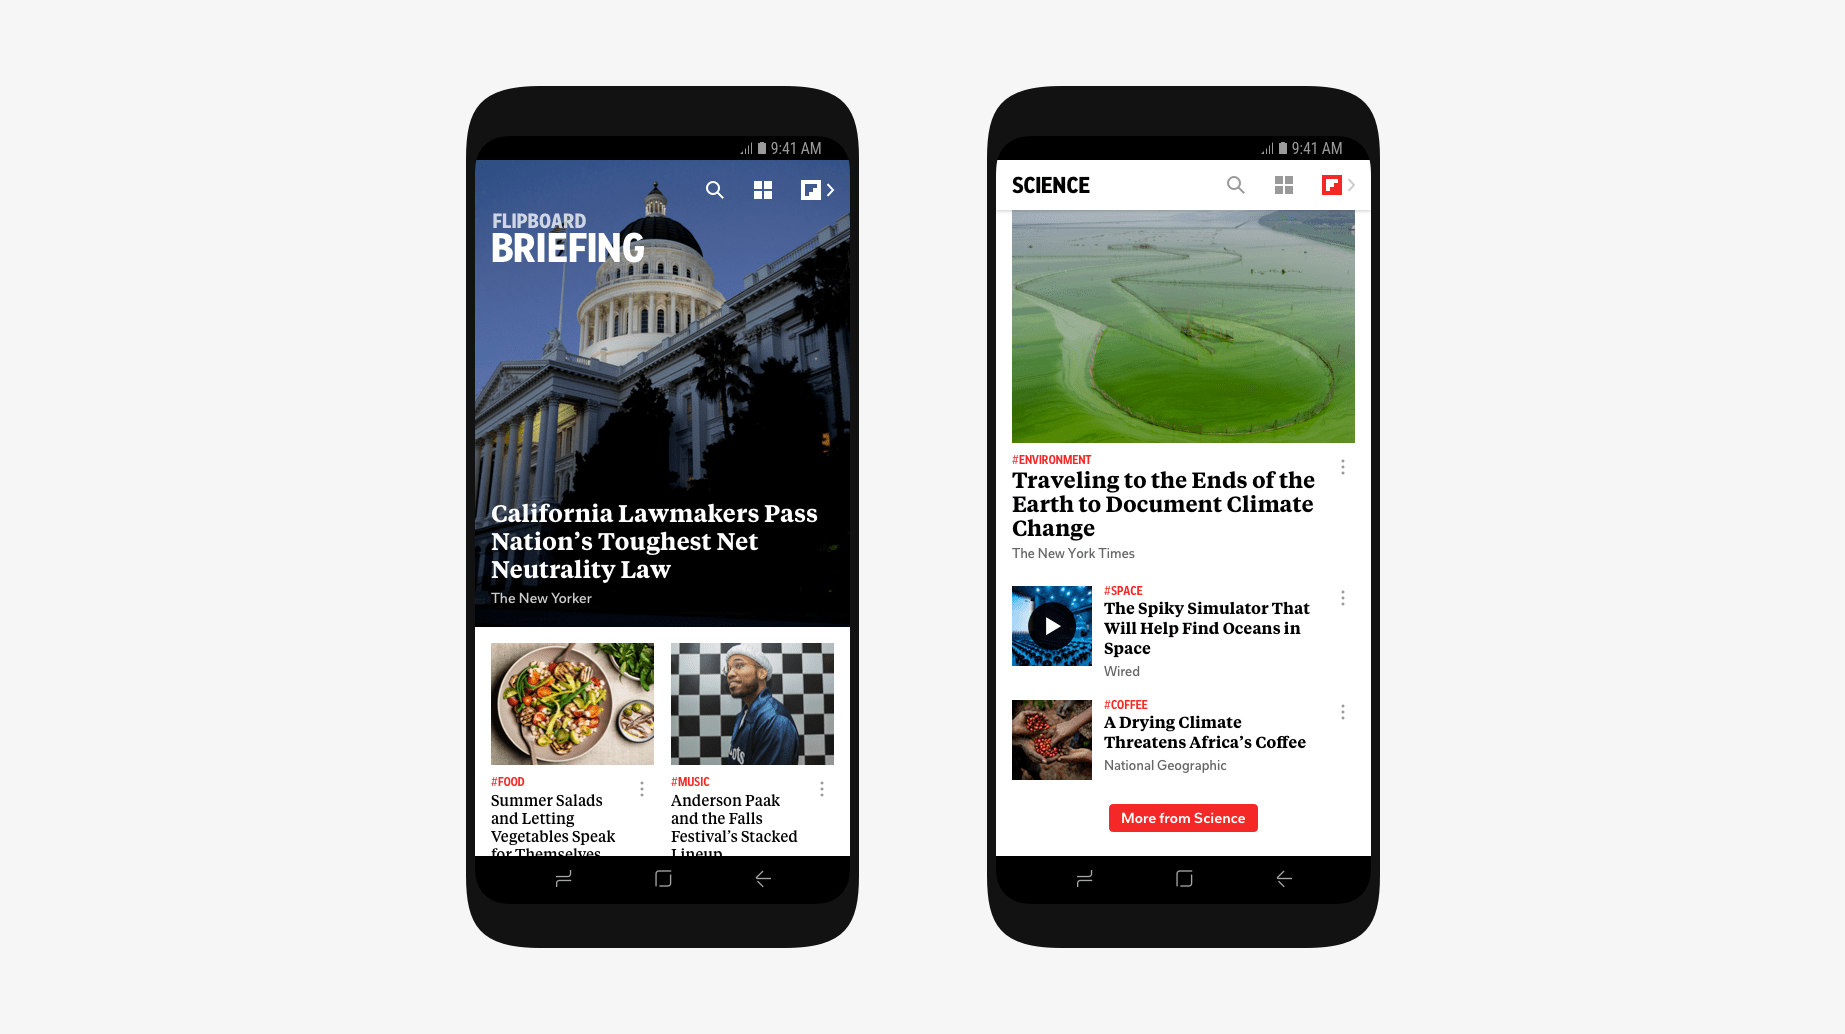 Overview of the new Flipboard  Briefing experience.